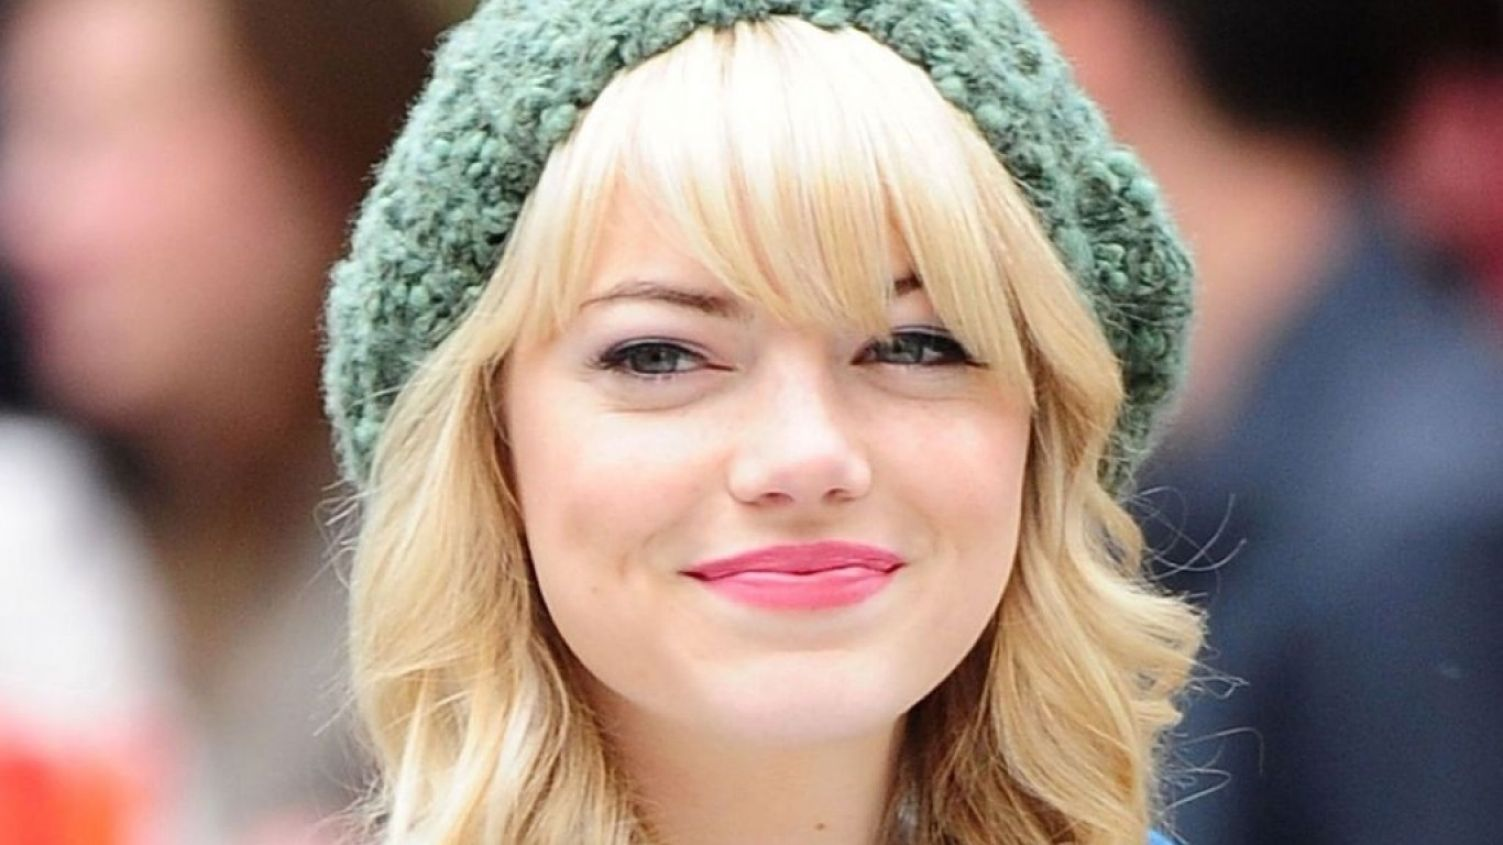 Download free HD Cute Emma Stone HD 1366×768 Wallpaper, image